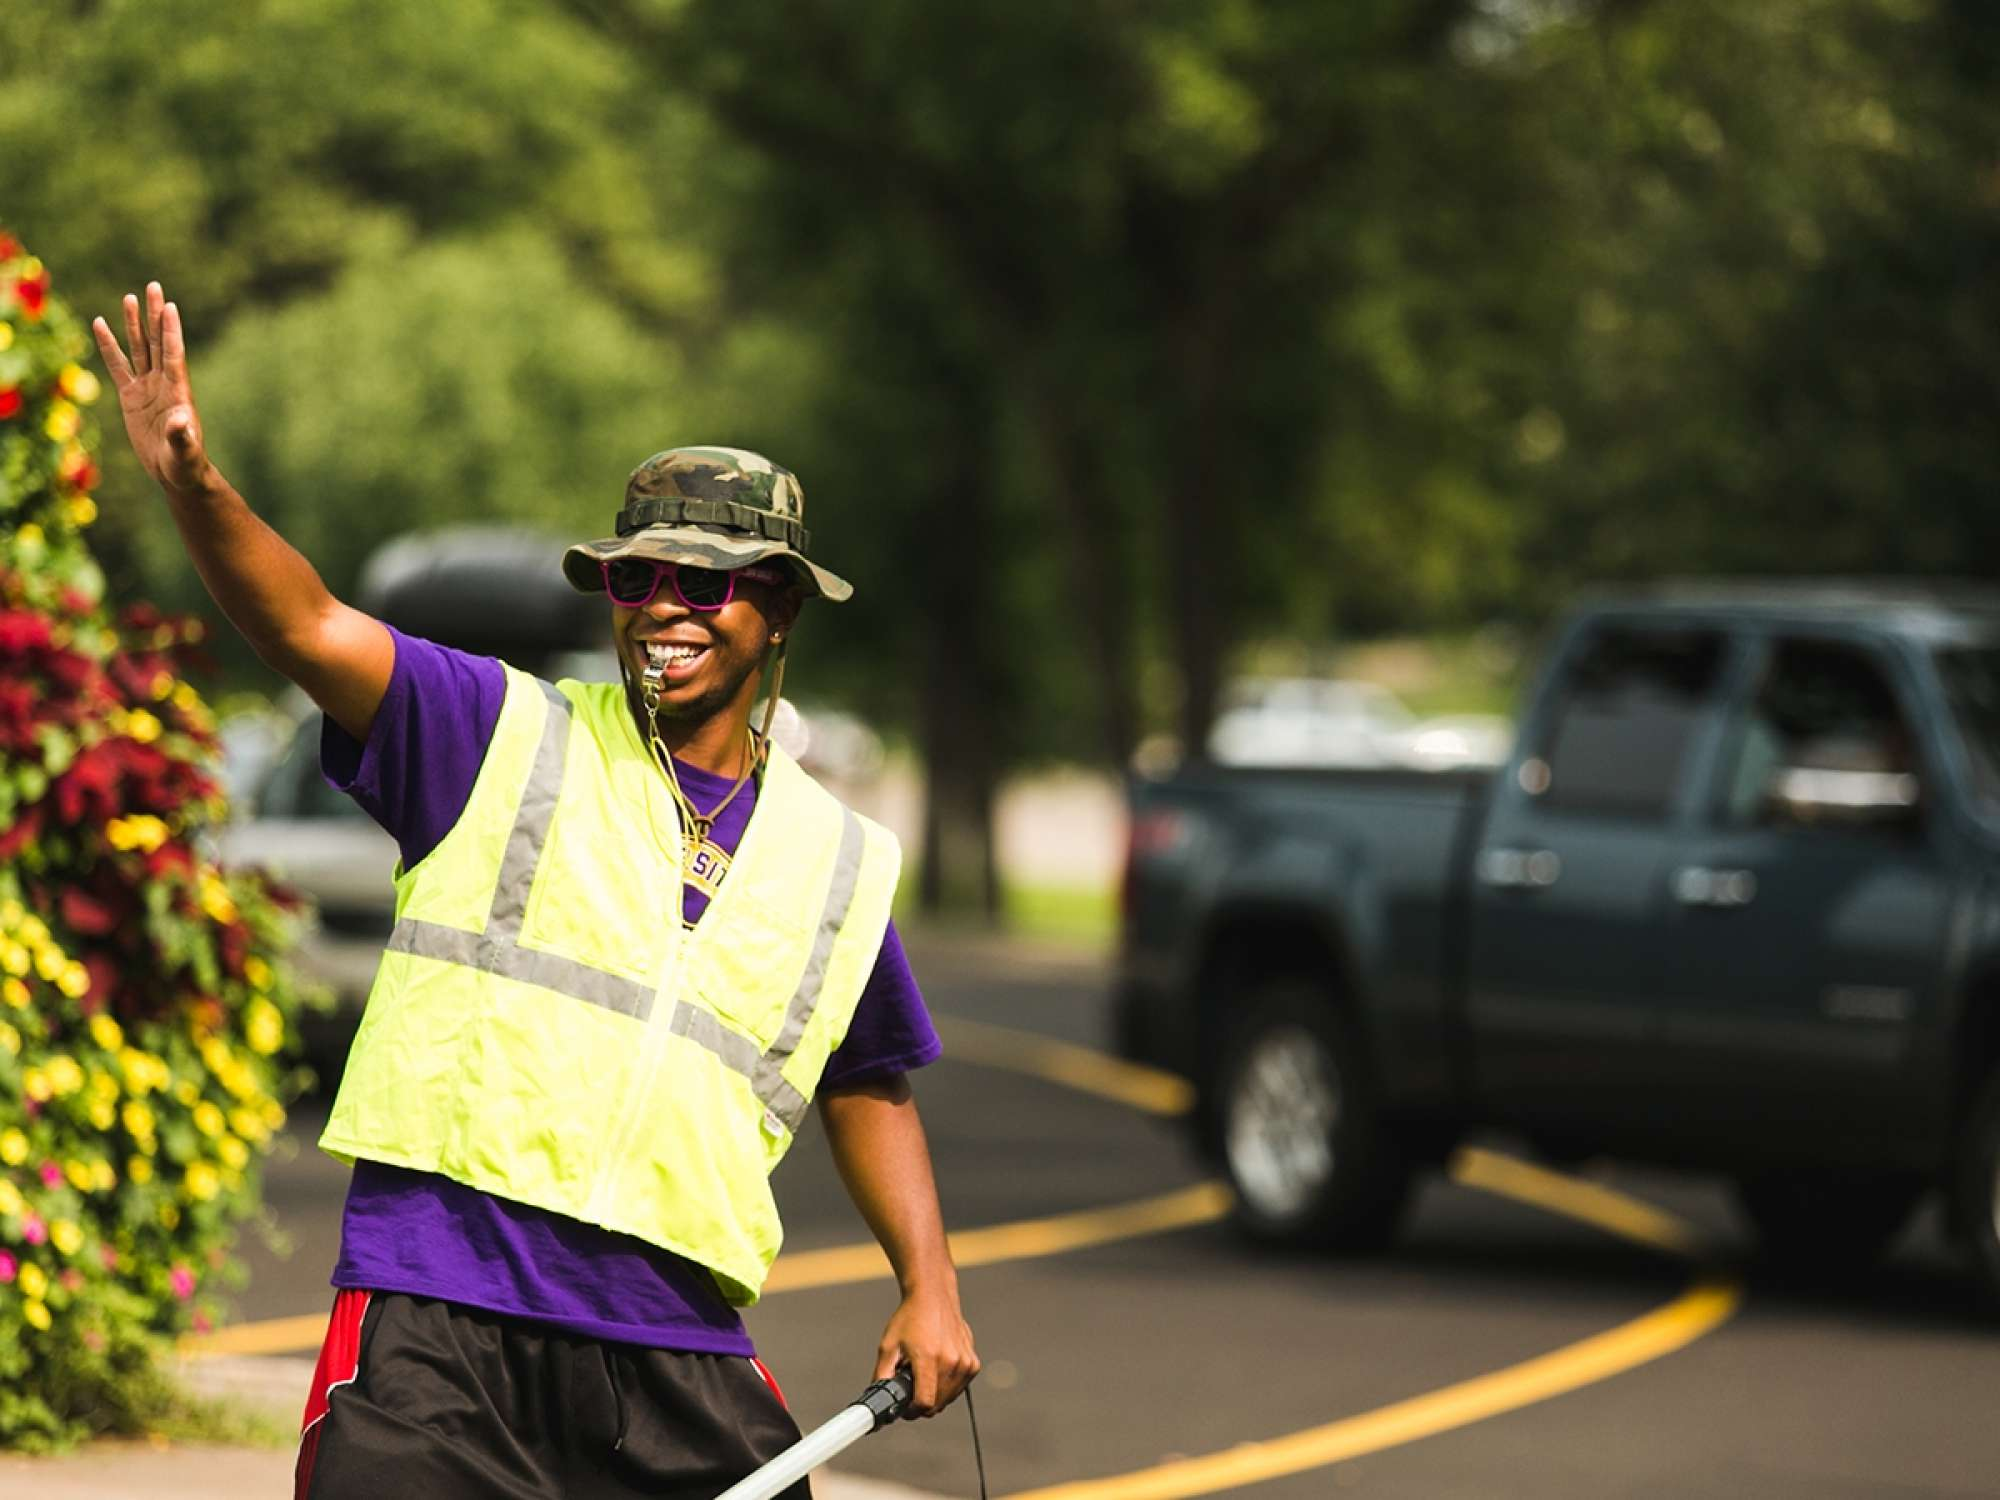 Crossing guard smiling and waving